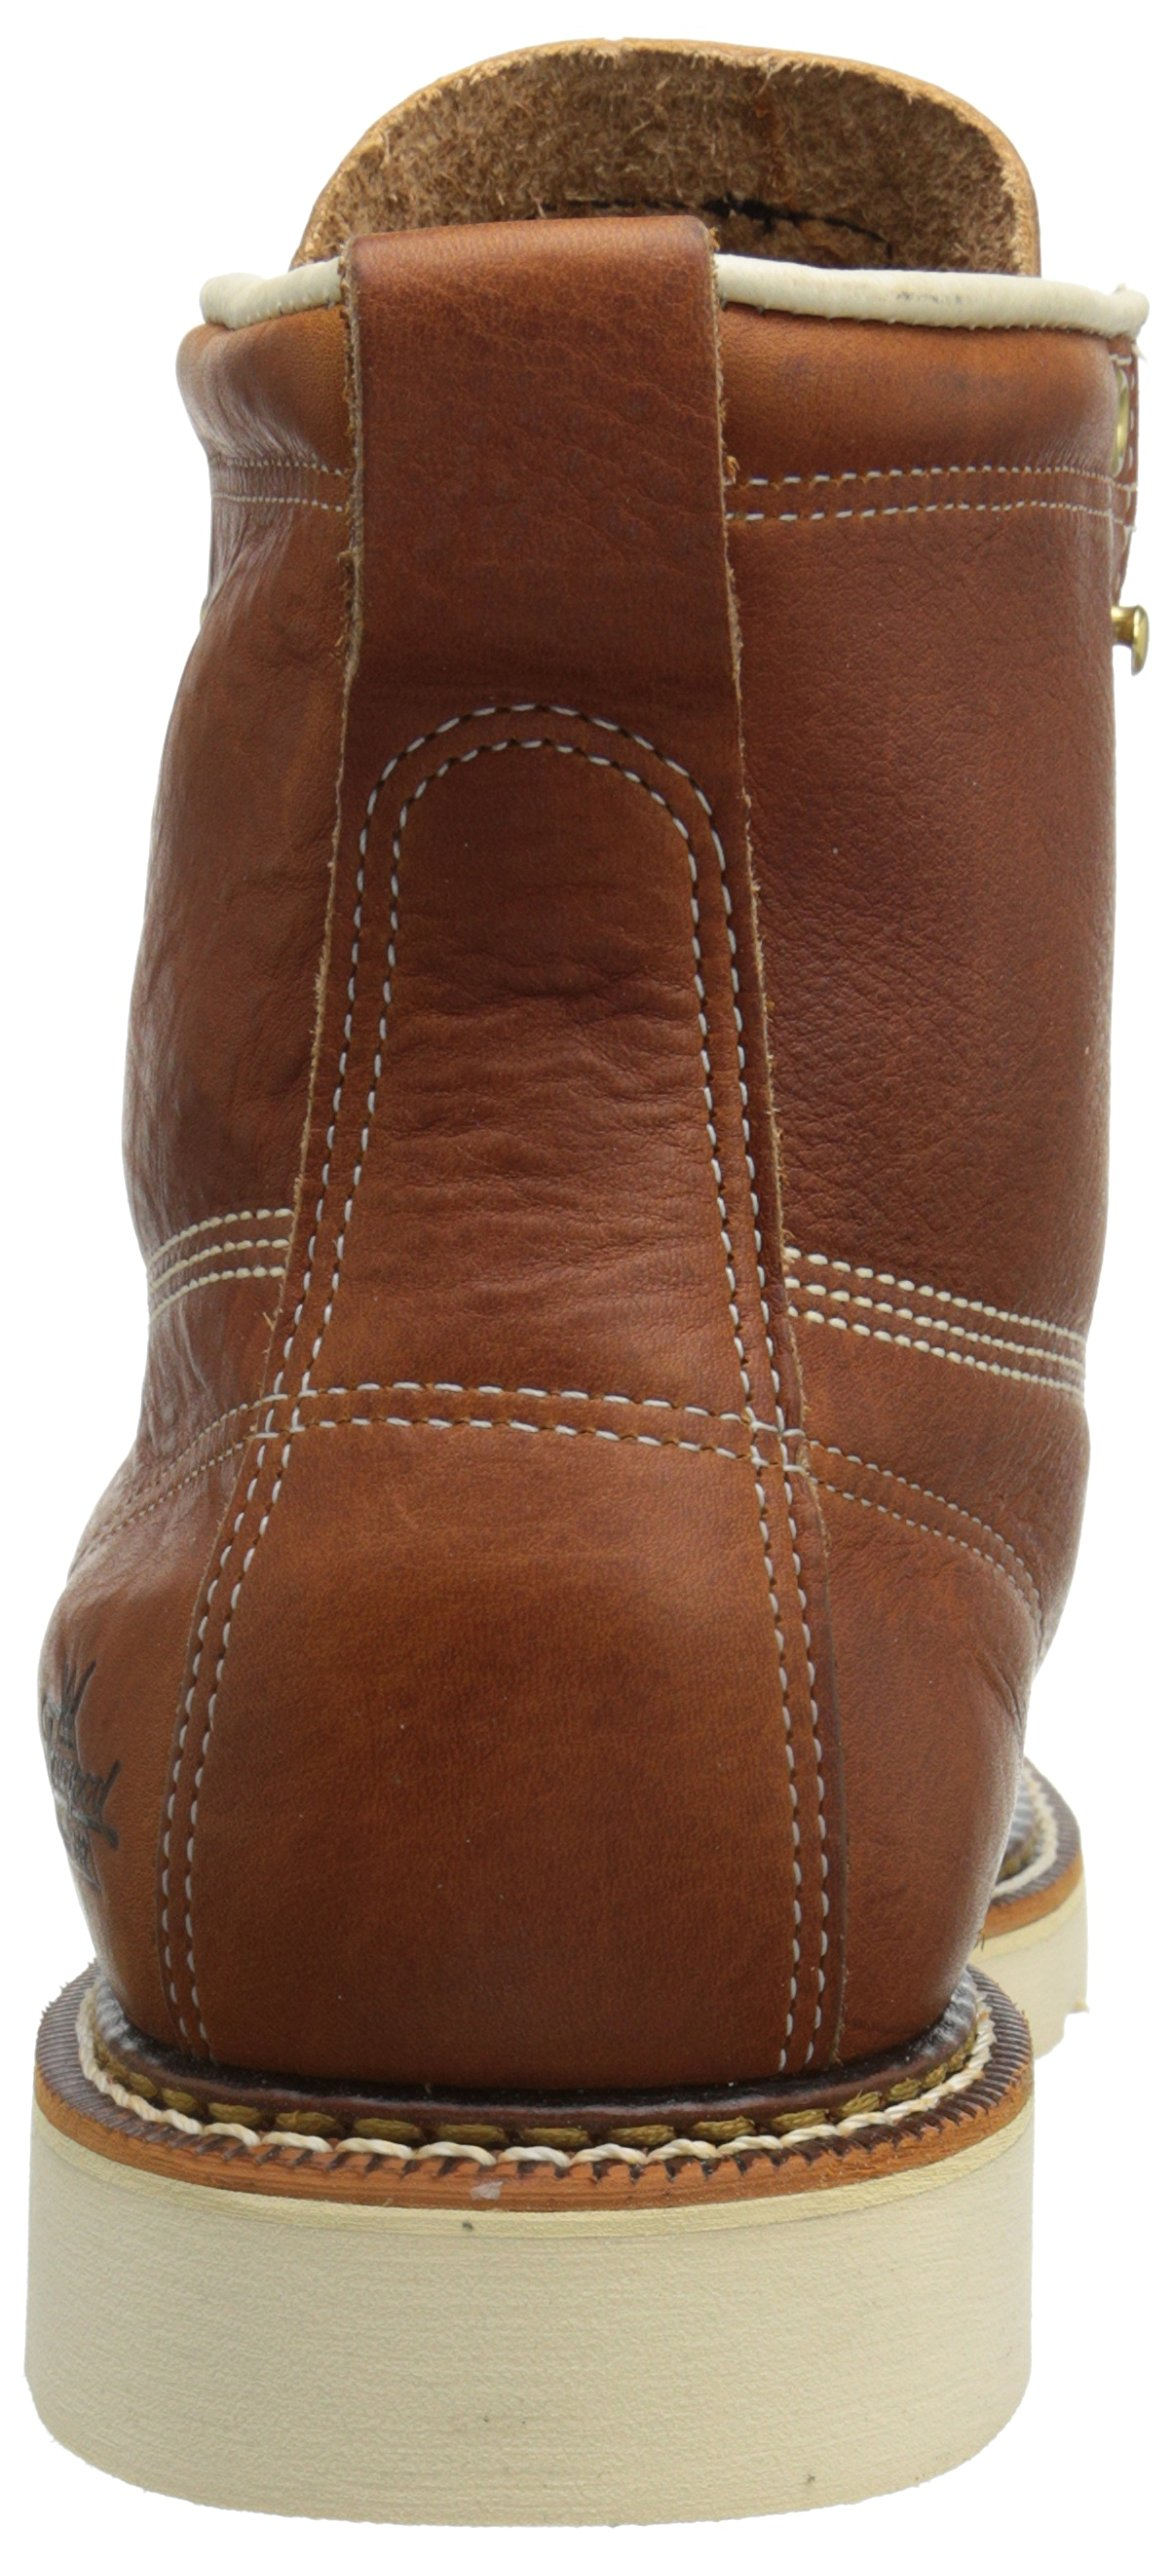 Thorogood-American-Heritage-Men-039-s-6-034-Moc-Toe-Max-Wedge-Non-Safety-Boots thumbnail 21